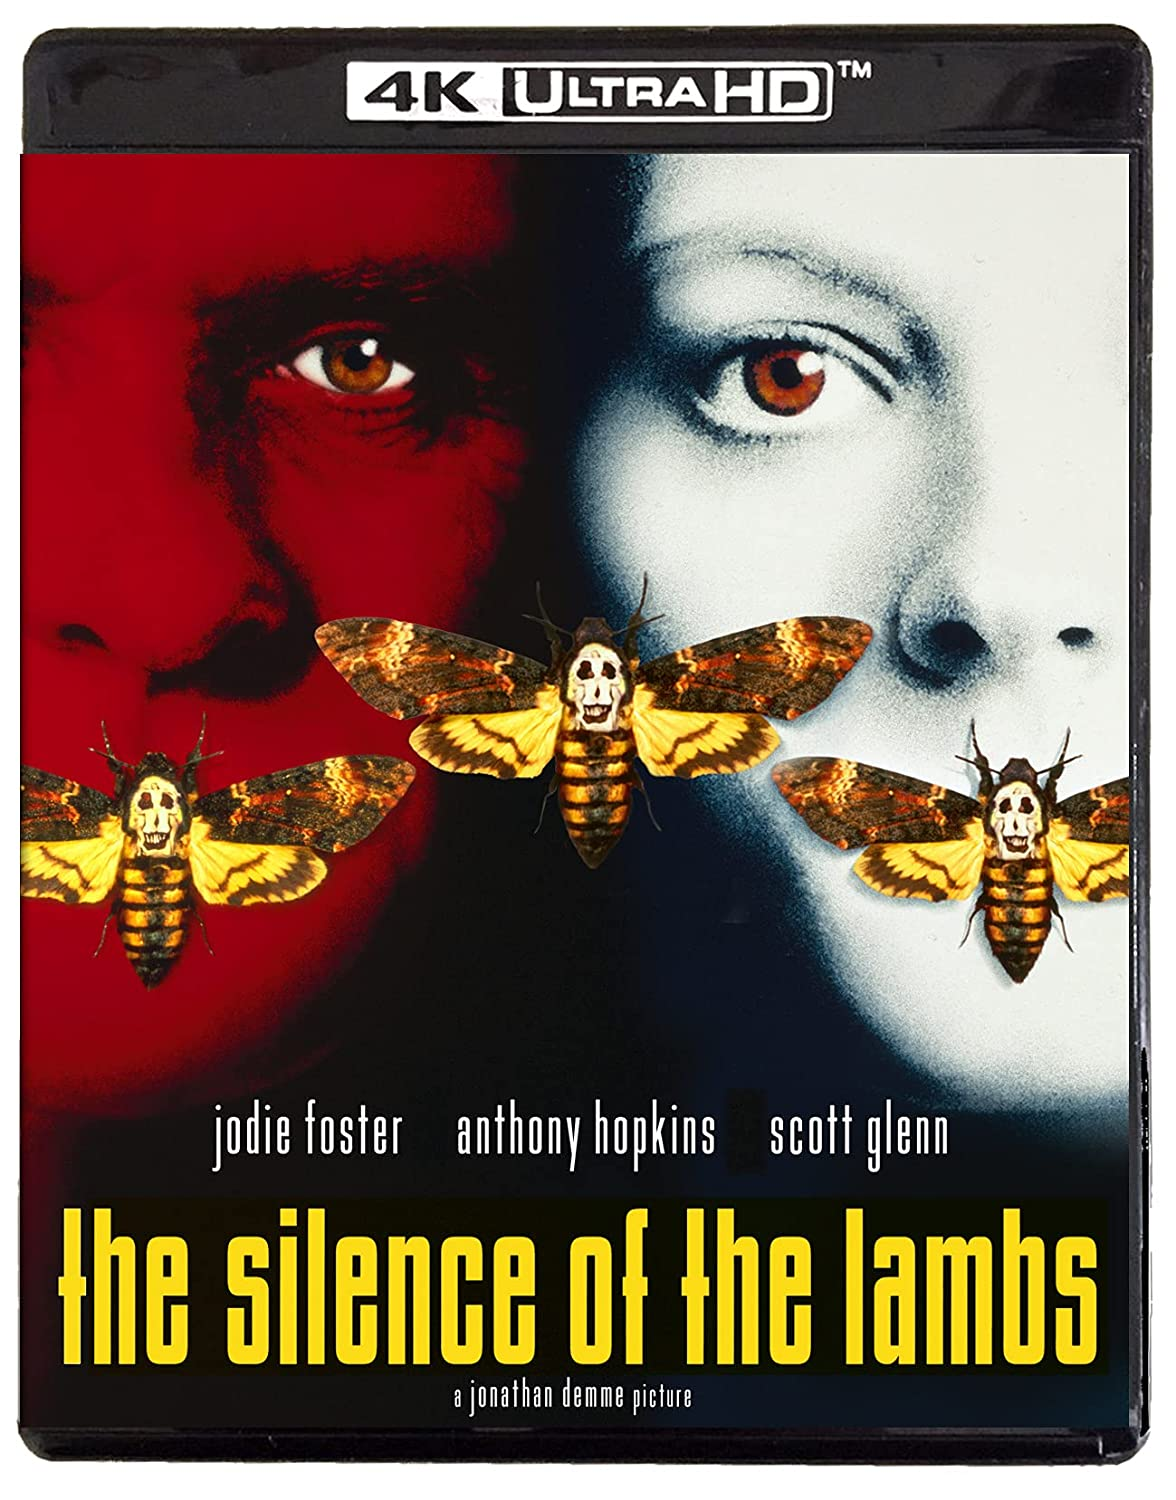 The Silence of the Lambs 4k Blu-ray